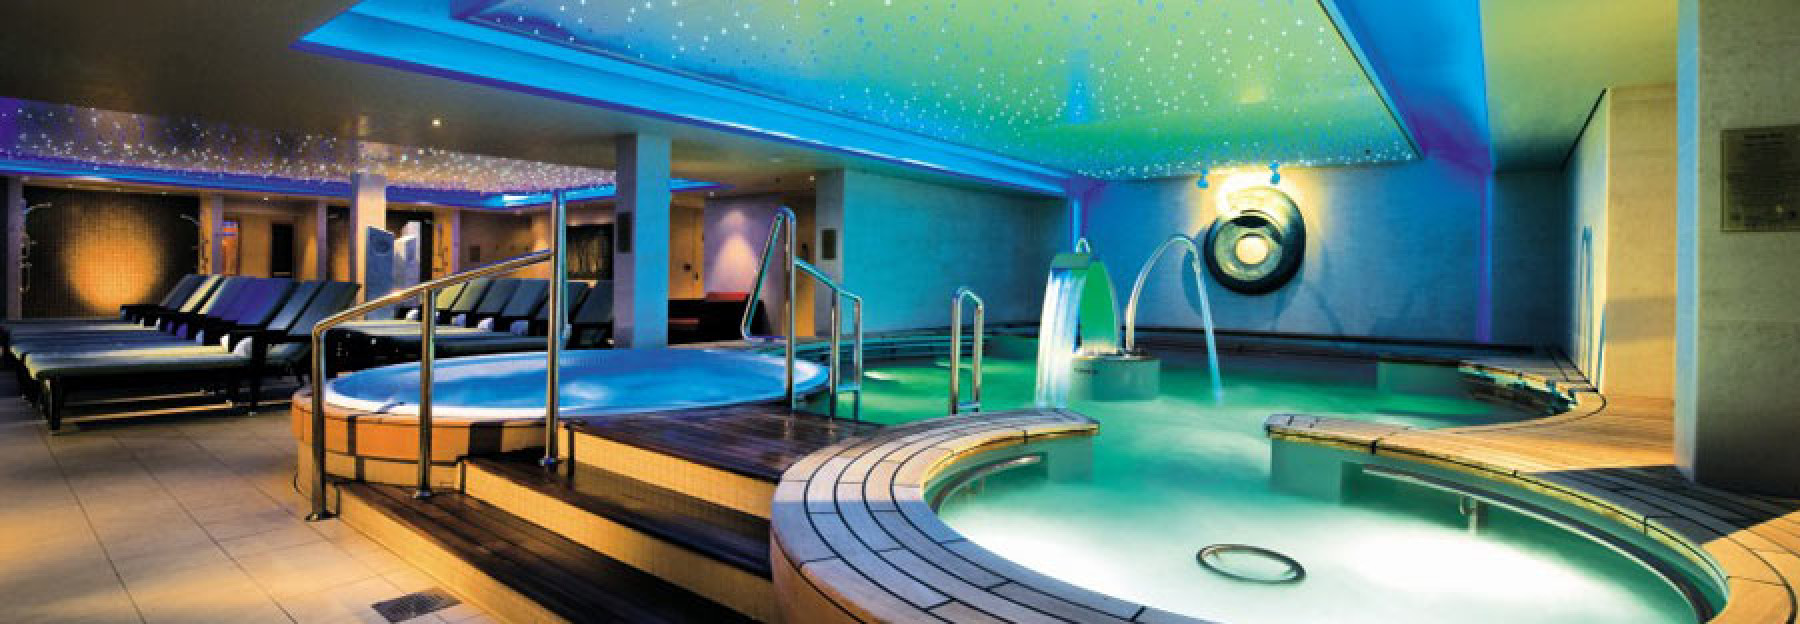 Norwegian Cruise Line Norwegian Star spa thermal suite.jpg